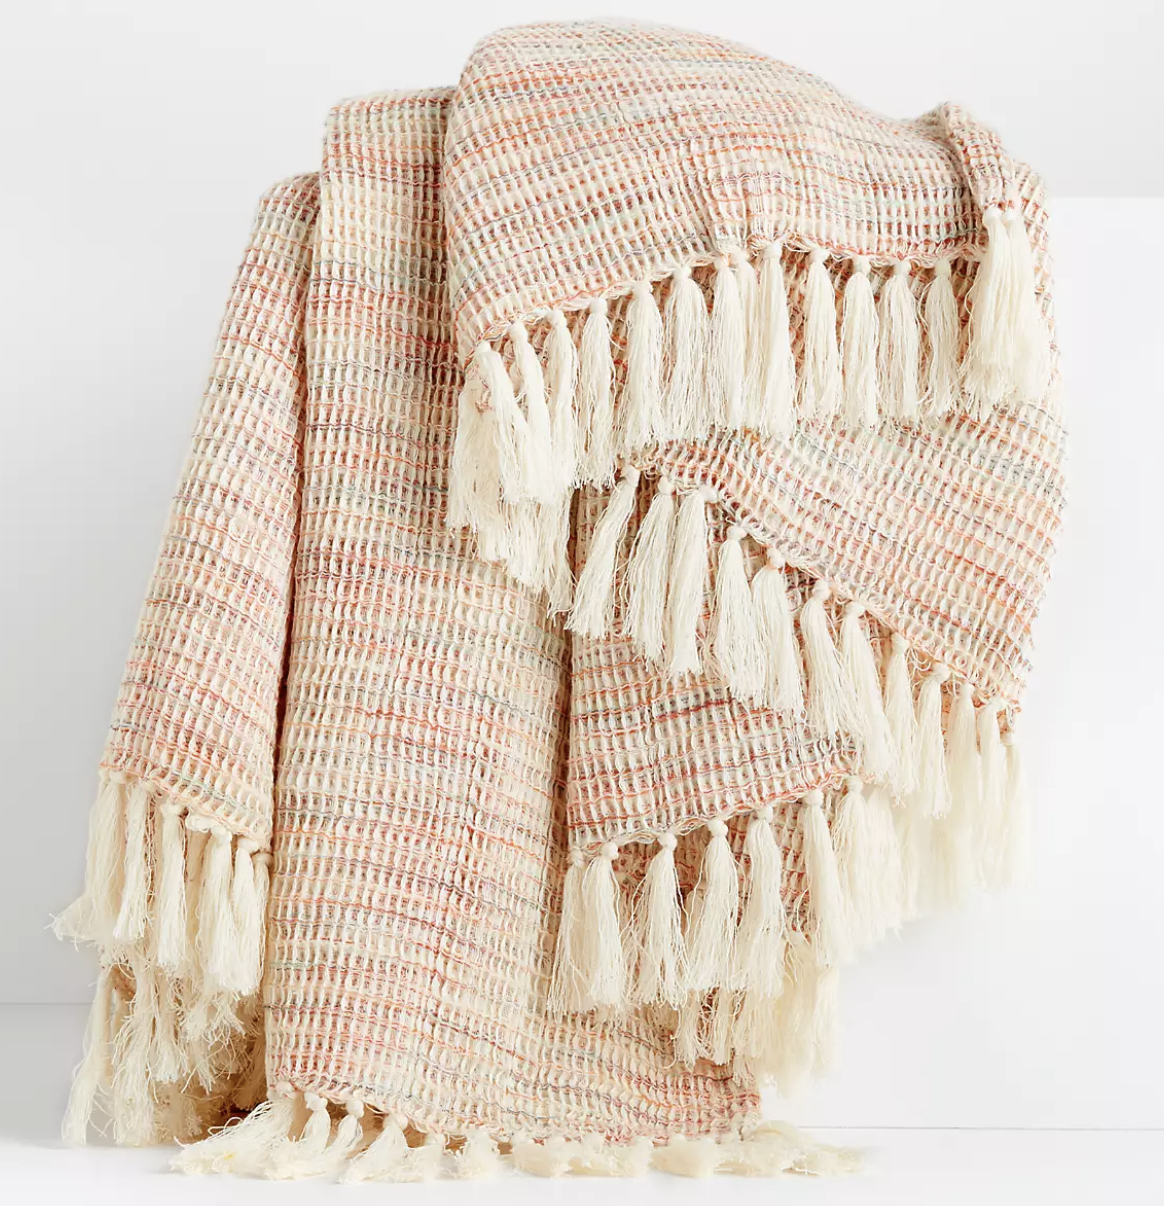 Cyril Waffle Weave Throw Blanket